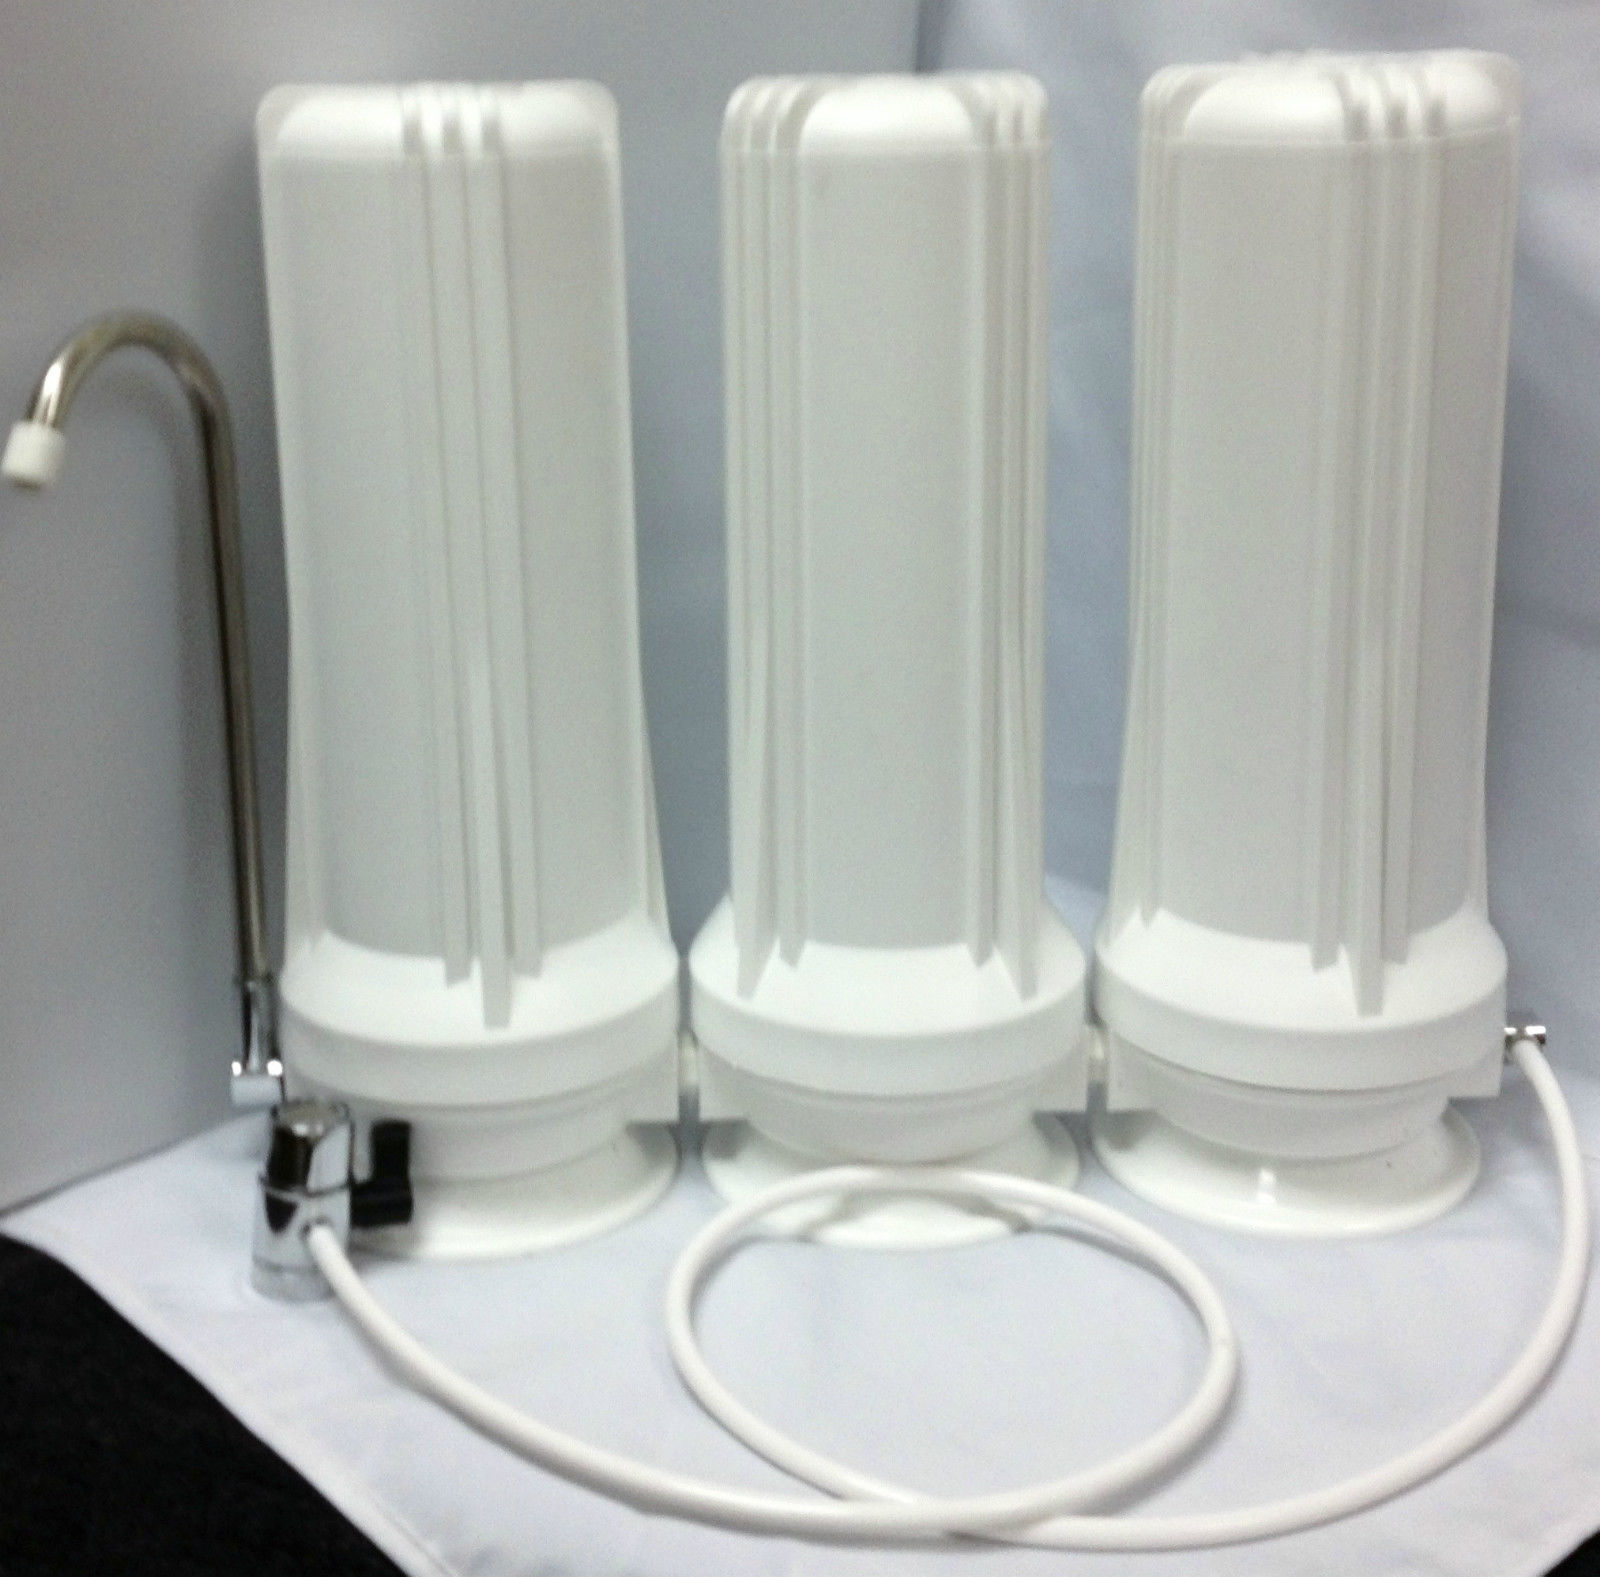 Premier Triple Counter Top Water Filter with Sediment/Carbon block /GAC filter